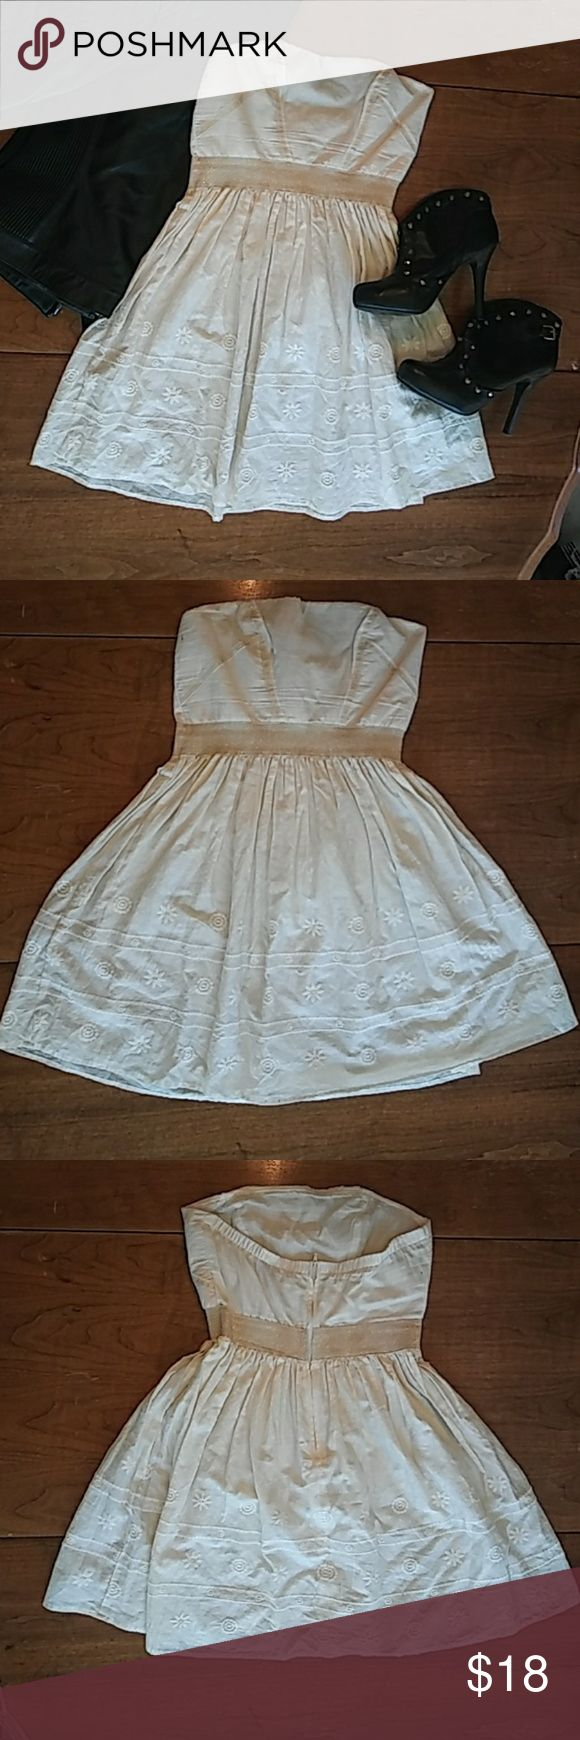 Kouture summer dress Sweet cream summer dress with gold detailing and embroidered flowers on the bottom by Kouture by Kimora. Size Large juniors bust measures 15.5in.laying flat waist measures 13.5in. Laying flat with a quite a bit of give due to the elastic waist. Length from top to bottom is 28in. Perfect for summer you can dress it up w some booties, tights and a leather jacket (like I did in 1st pic.) Or throw it on w some flip flops a cute bag and youre ready to go! kouture by kimora…